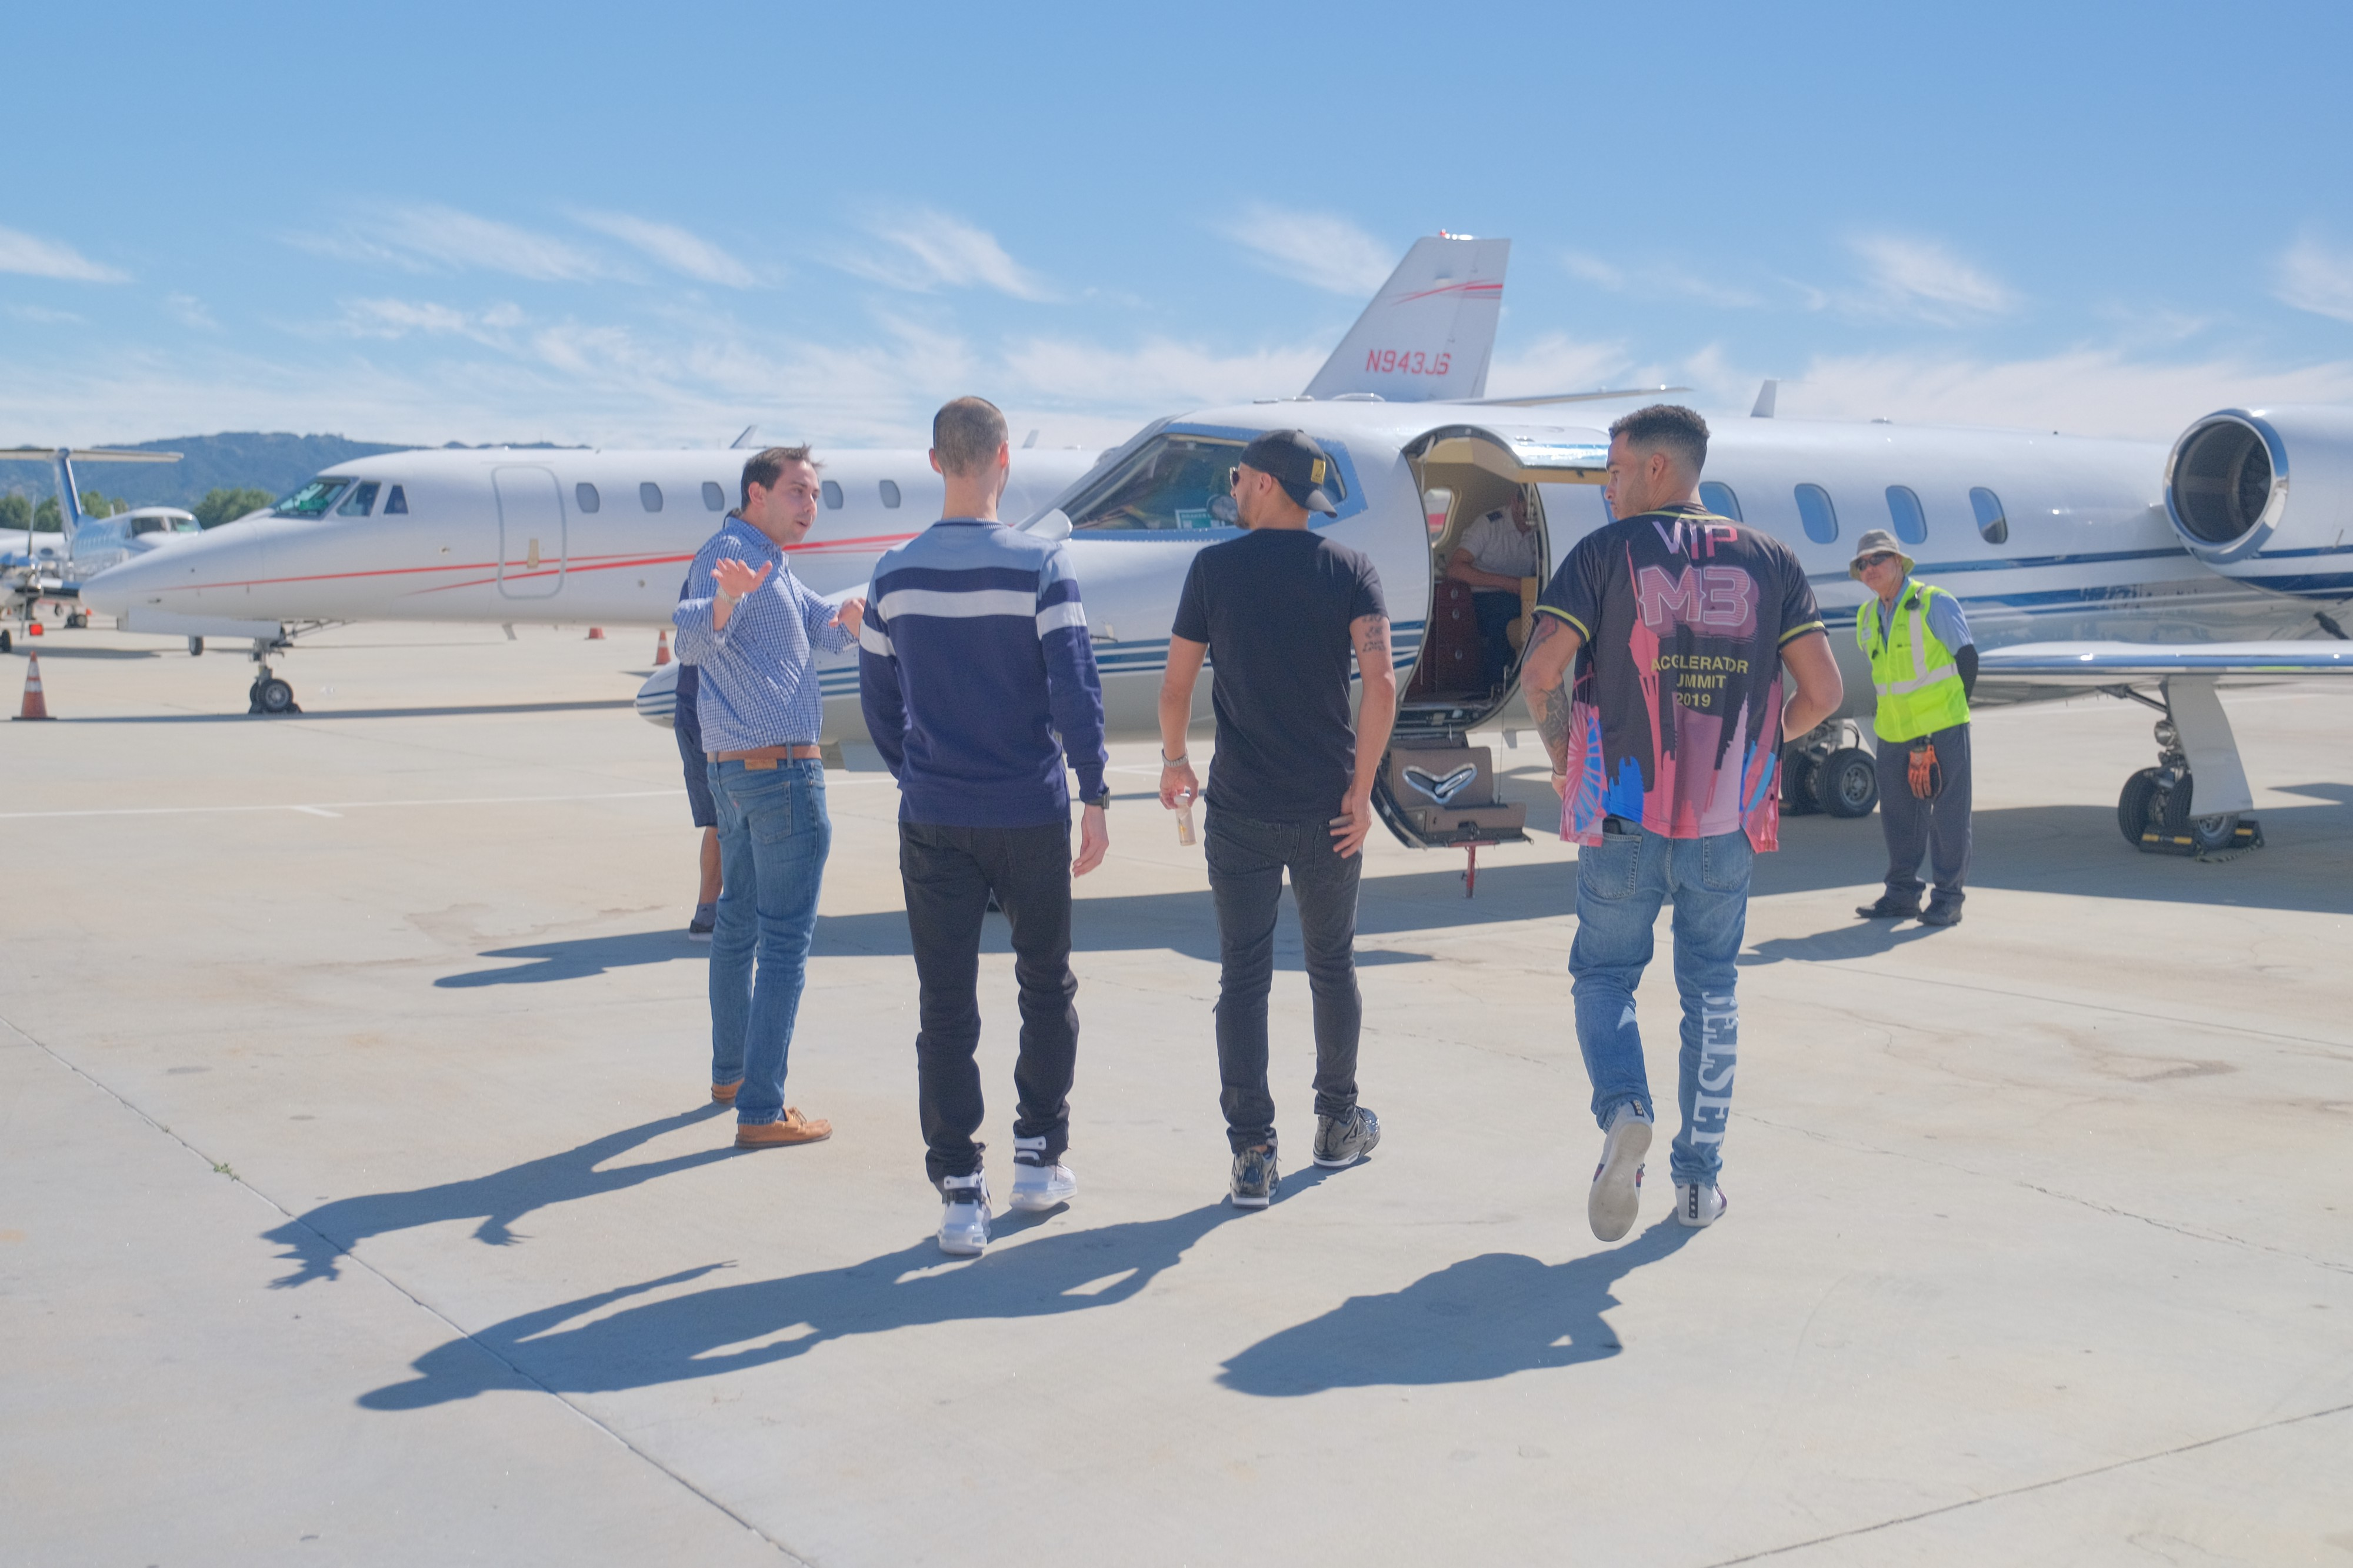 4 male celebrities walking on private jet to fly & travel on luxury trip